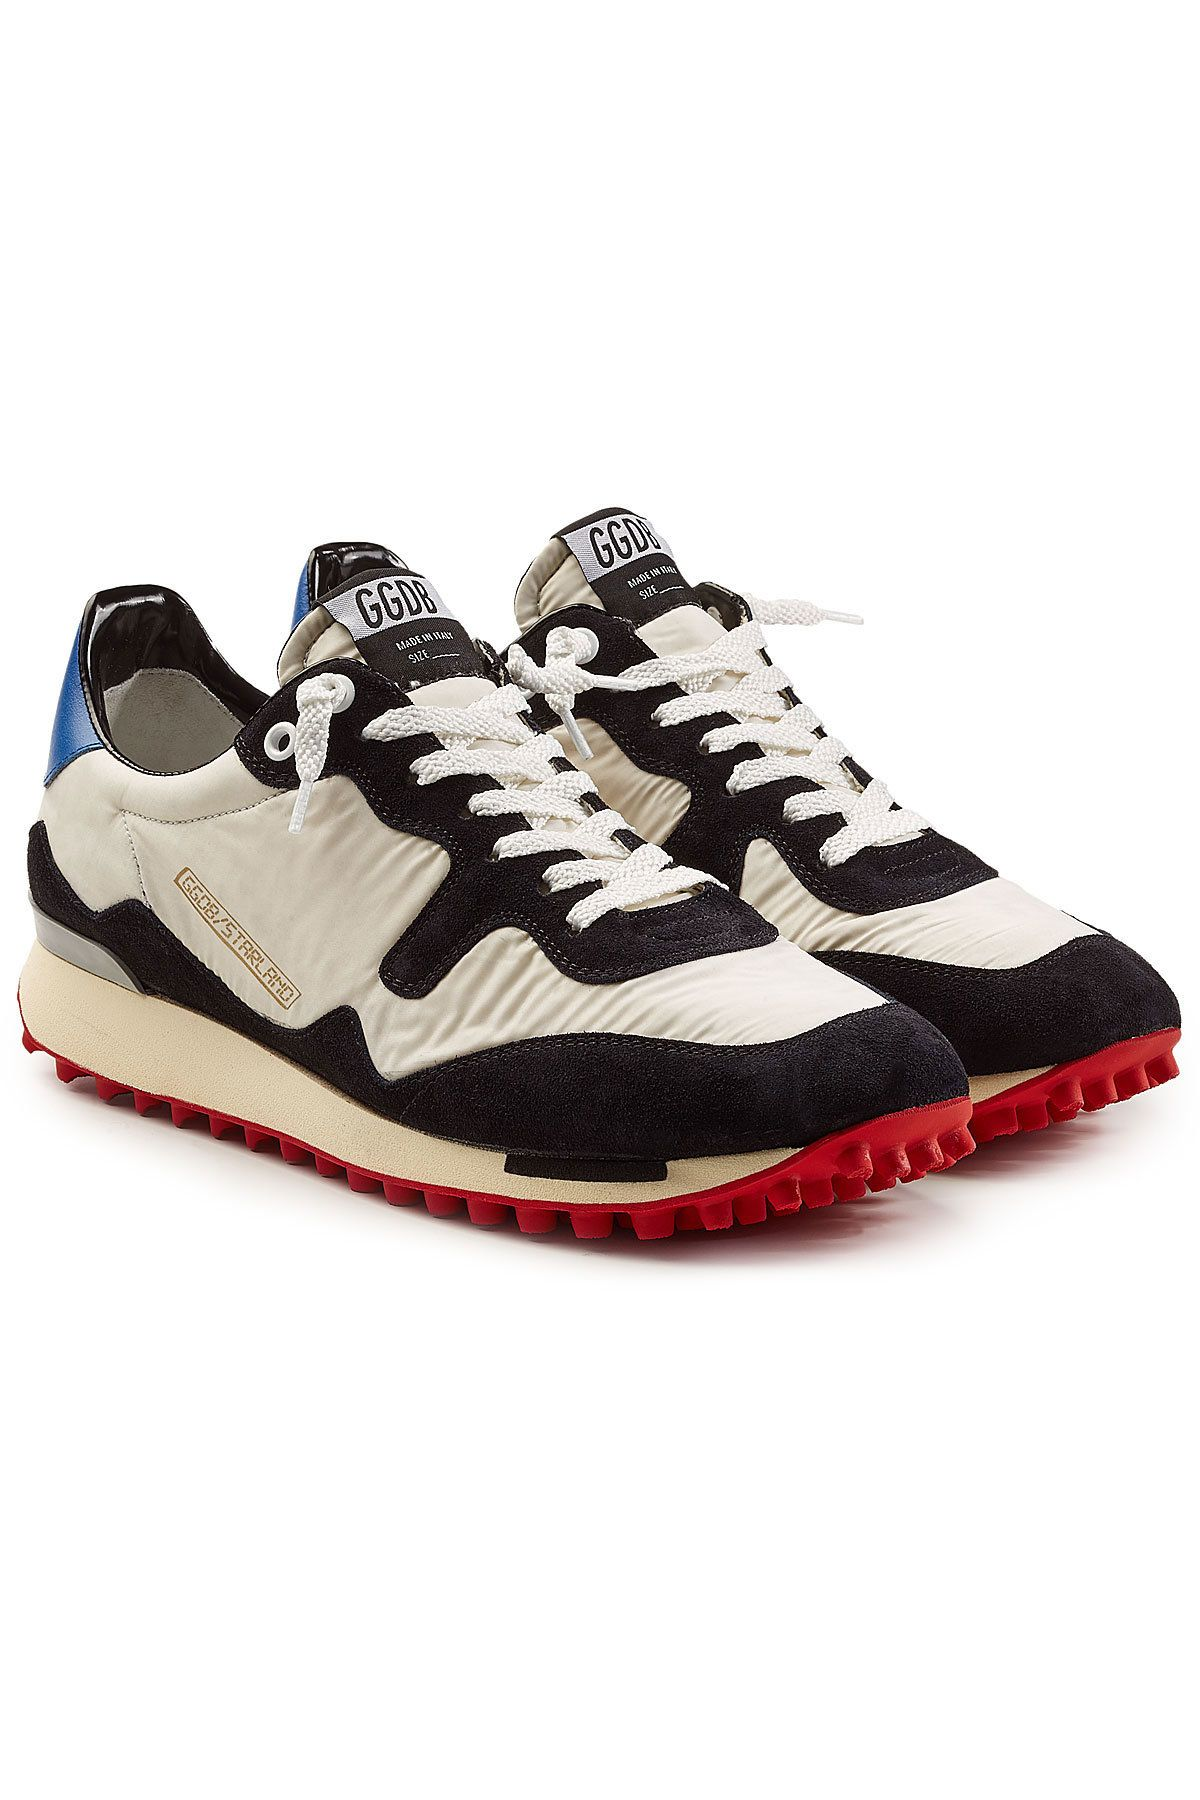 5cedac1948593 GOLDEN GOOSE GOLDEN GOOSE DELUXE BRAND STARLAND SUEDE AND LEATHER SNEAKERS.   goldengoose  shoes